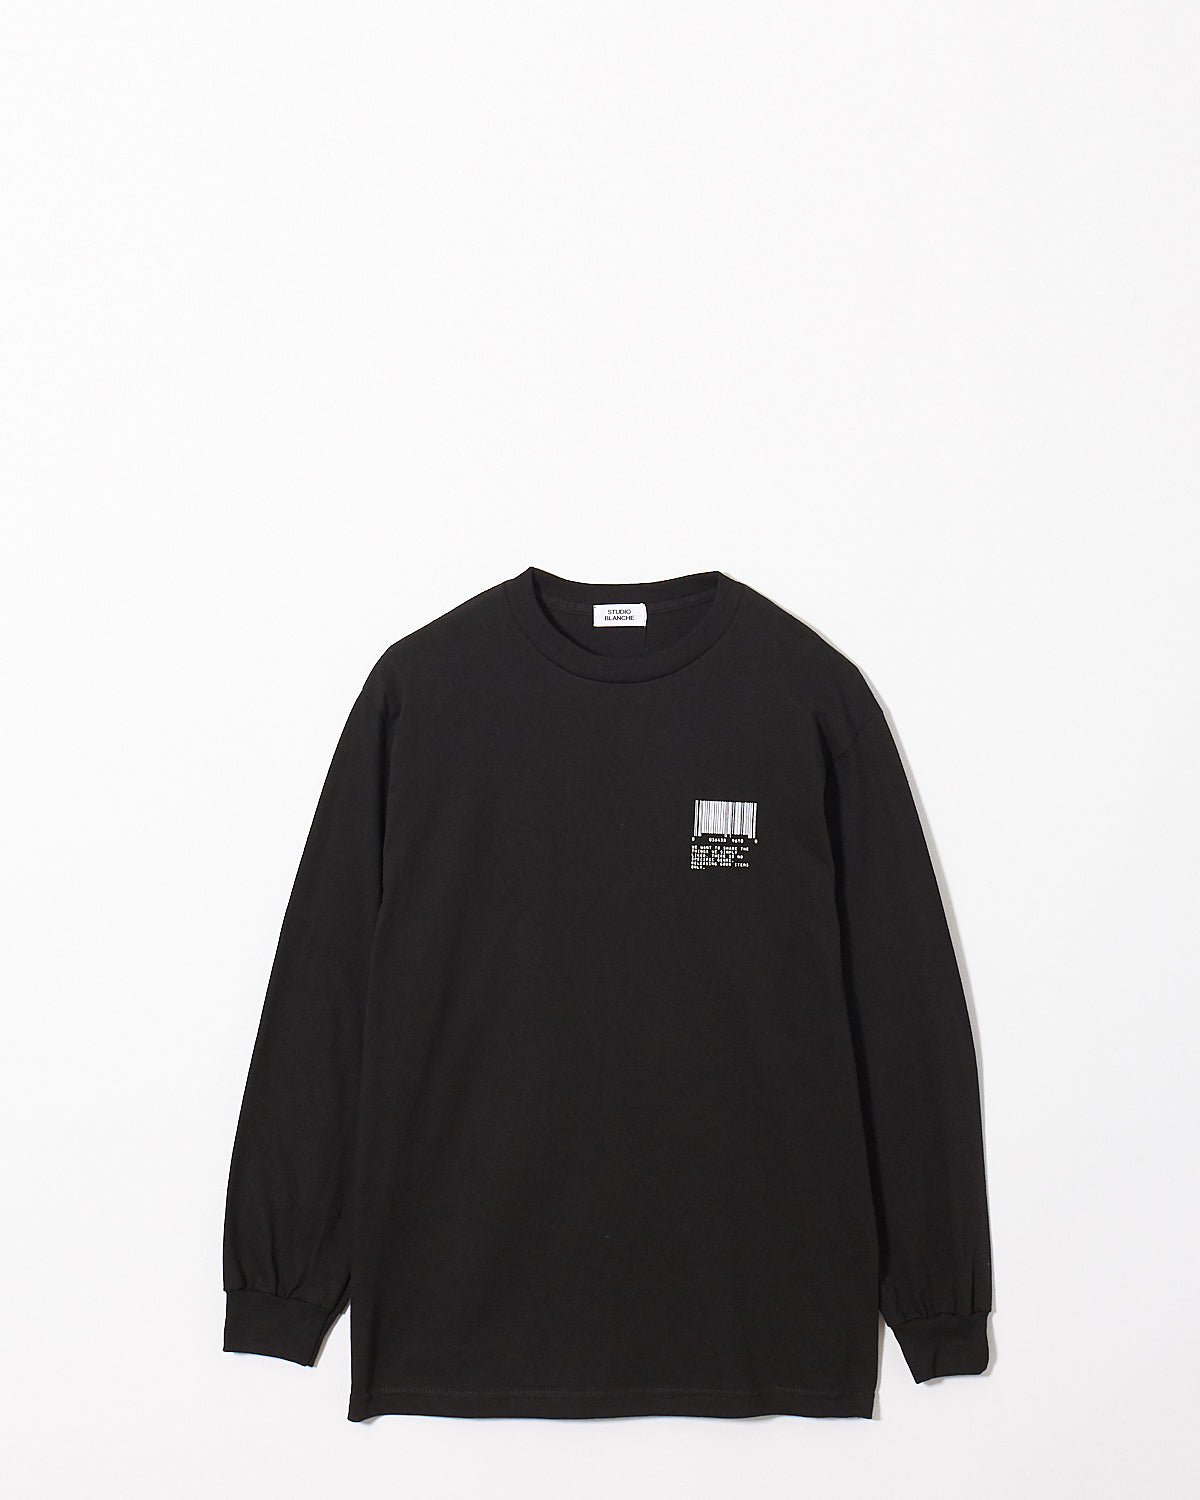 STUDIO BLANCHE / BARCORD PRINT LONG SLEEVE Tee(black)